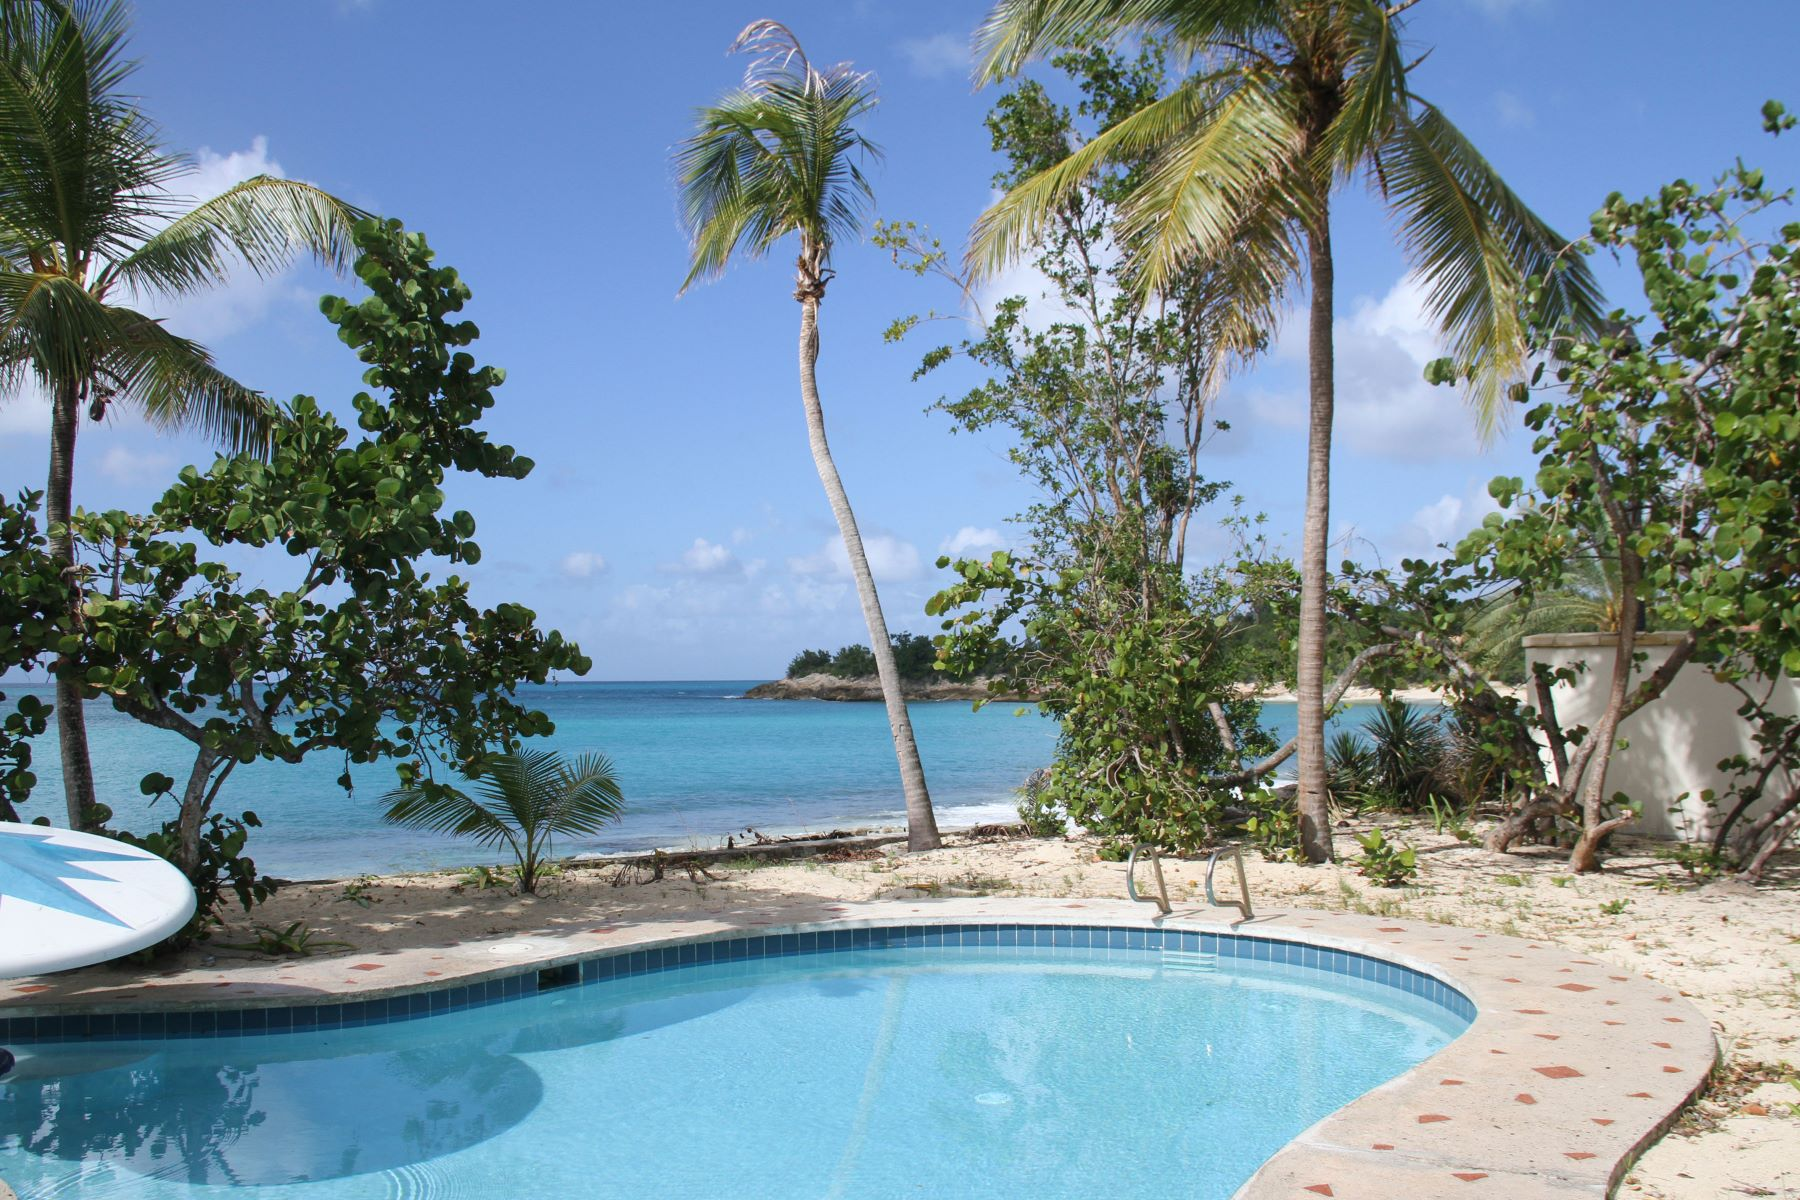 Plum Bay Retreat Plum Bay Retreat Terres Basses, Cities In Saint Martin 97150 St. Martin